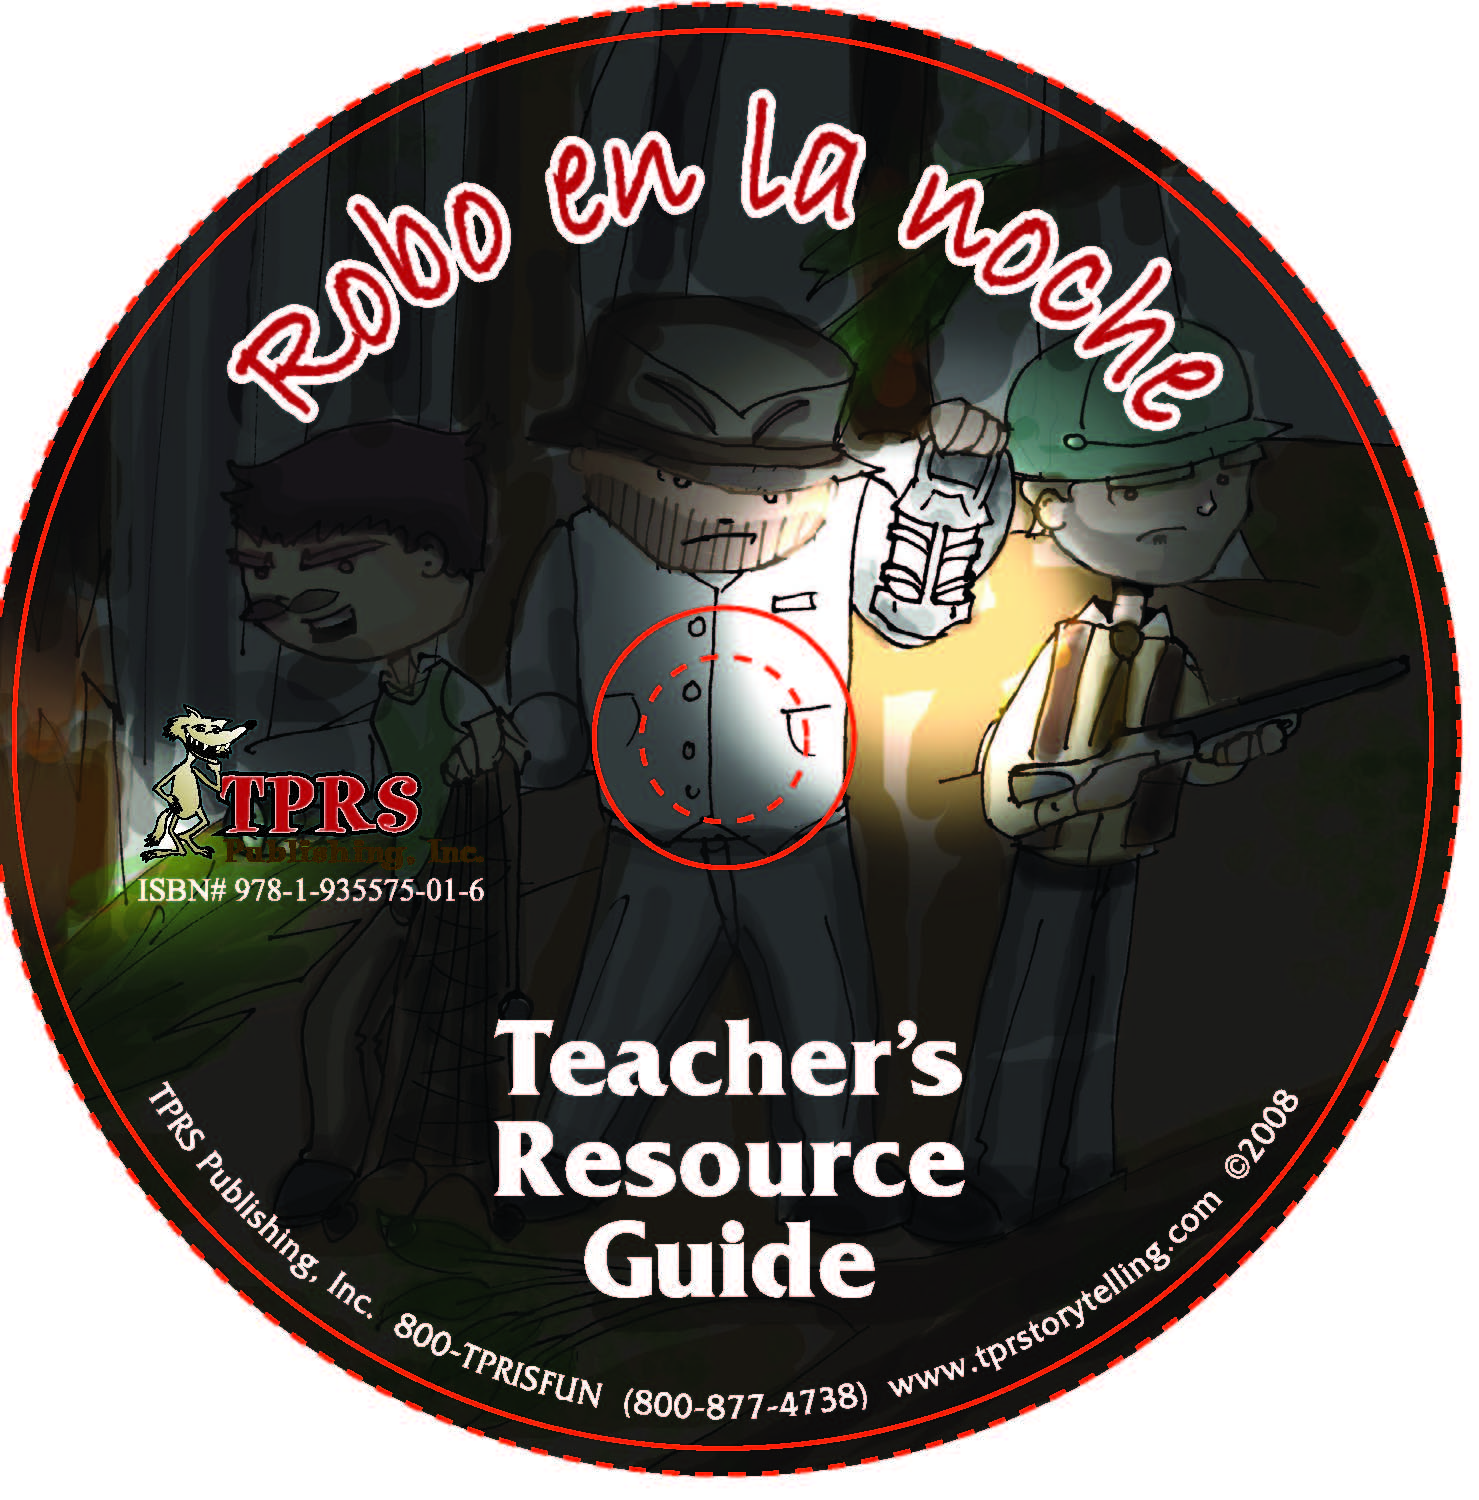 Robo en la noche – Teacher's Guide on CD